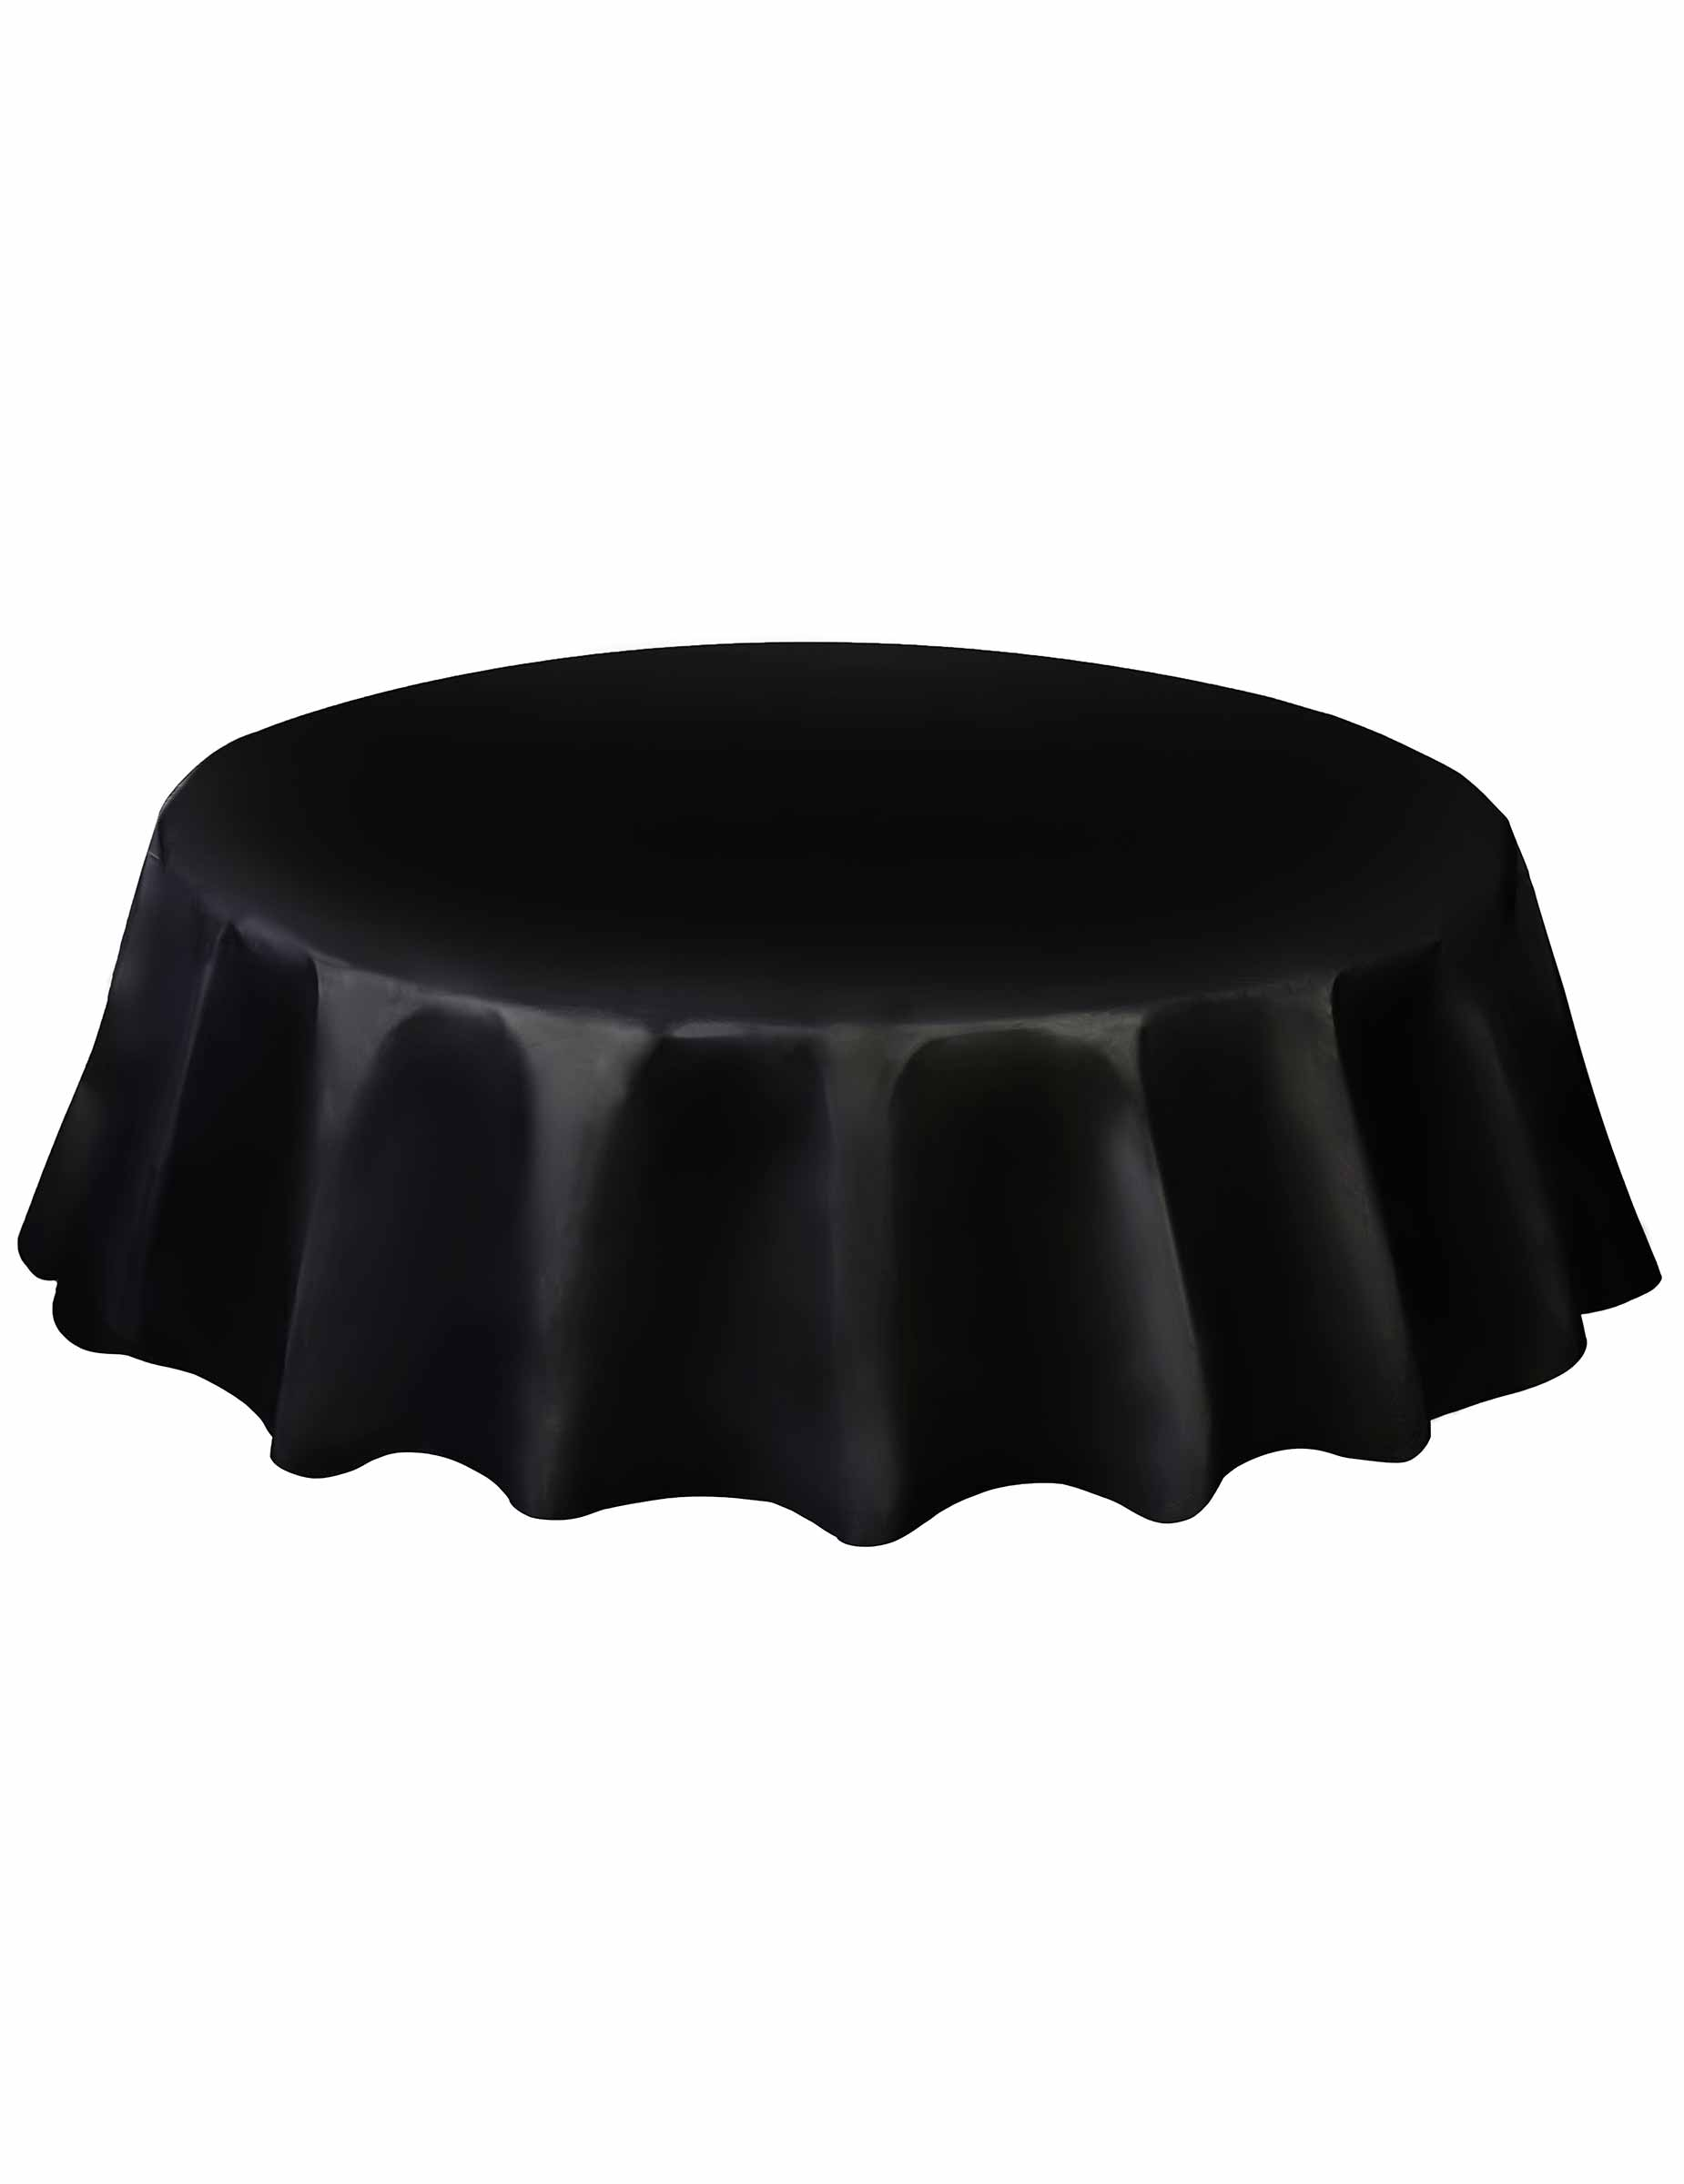 nappe ronde en plastique noire. Black Bedroom Furniture Sets. Home Design Ideas